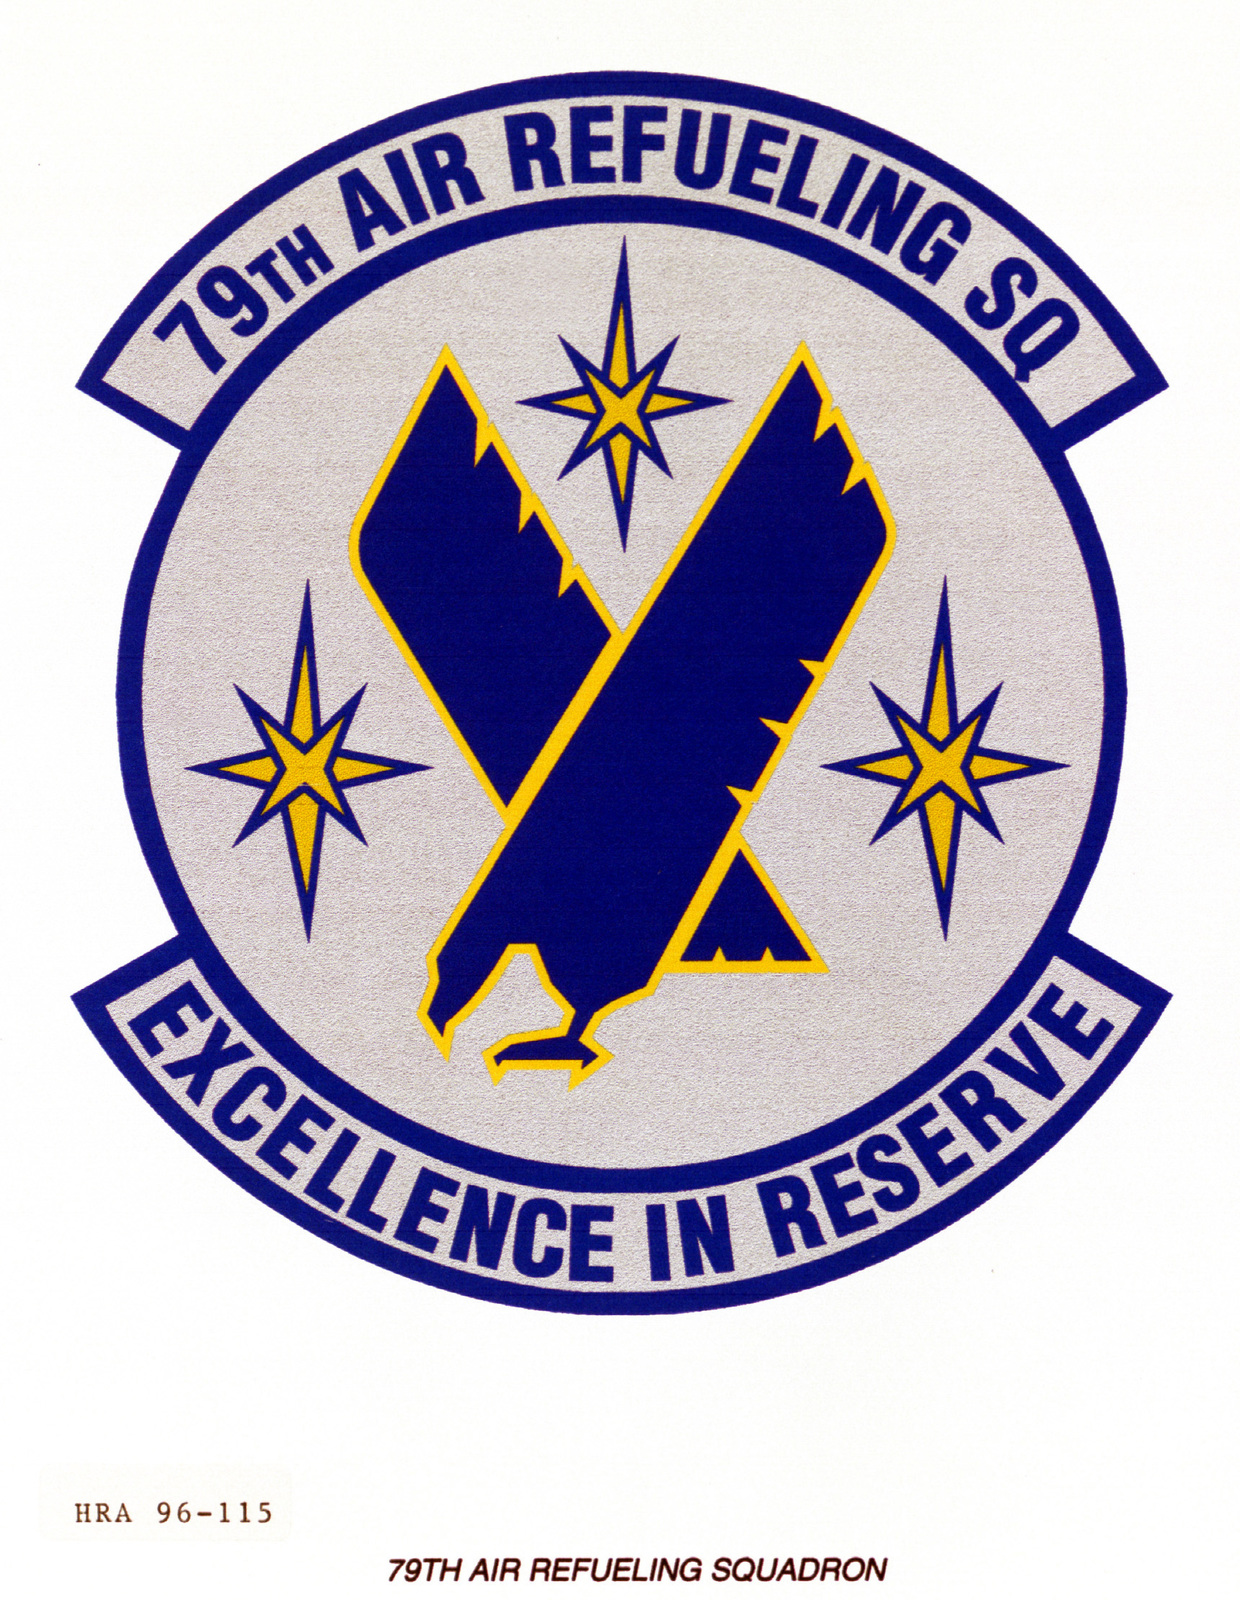 Air Force Organizational Emblem. 79th Air Refueling Squadron Exact Date Shot Unknown